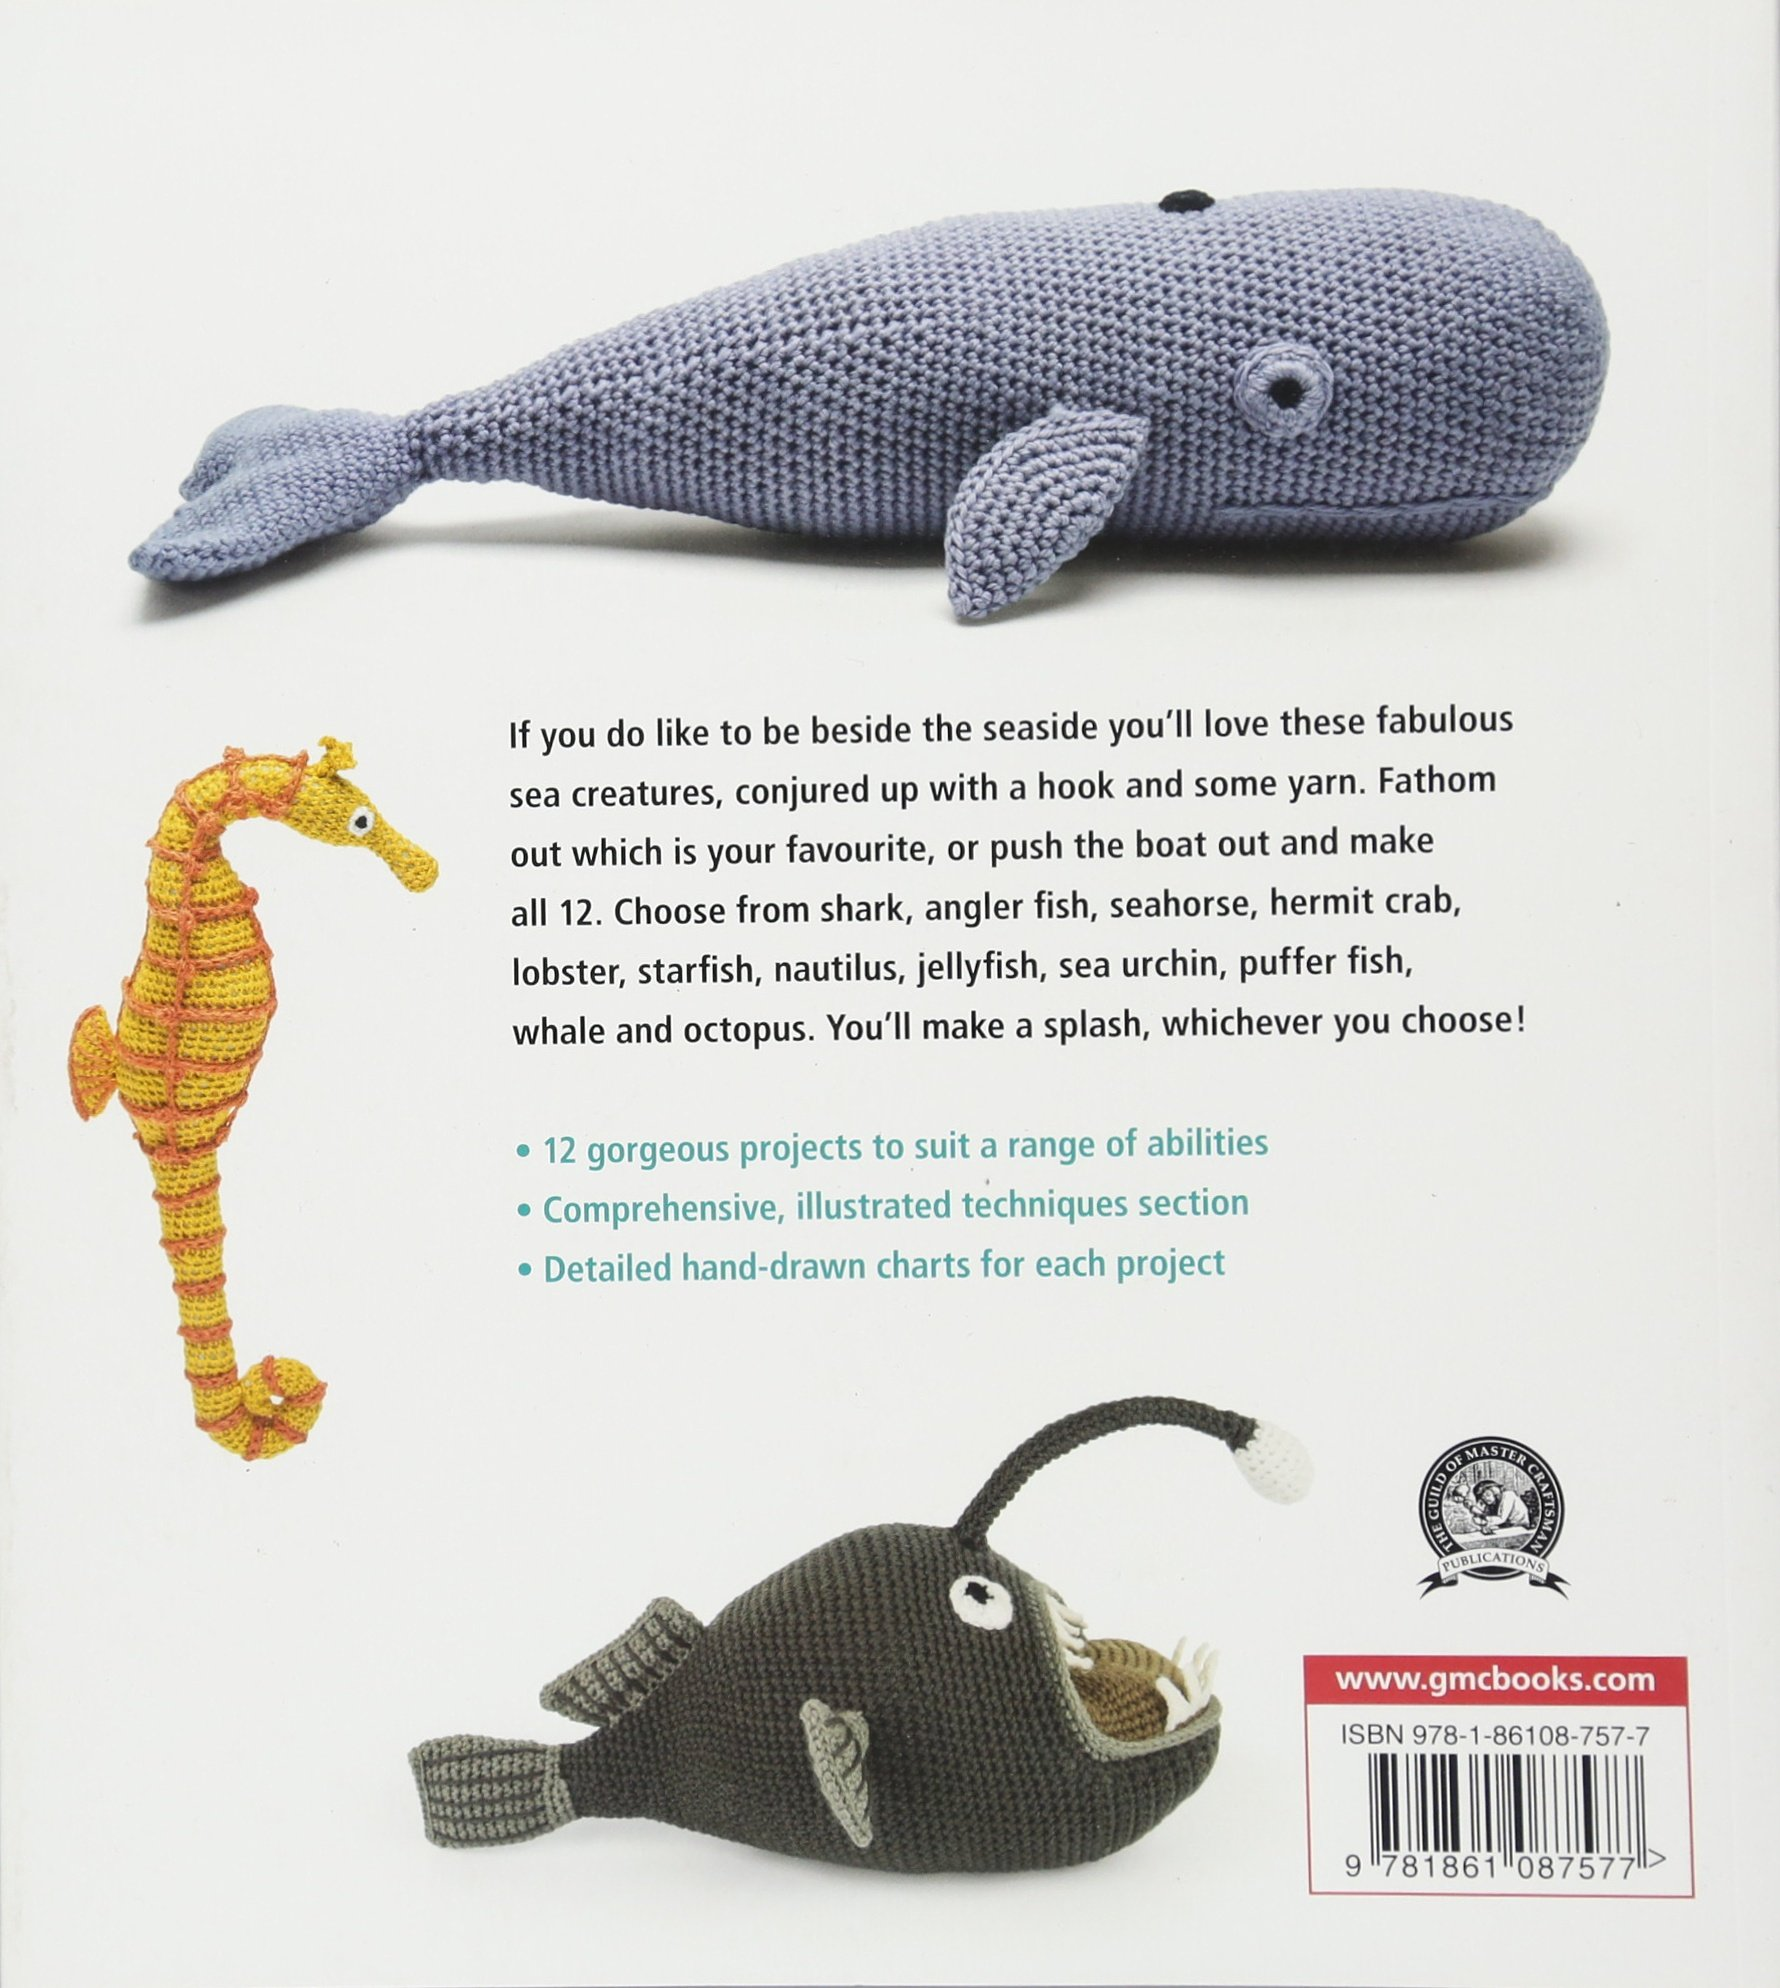 Amigurumi Crochet Sea Creature Animal Toy Free Patterns | Kroşe ... | 1988x1780